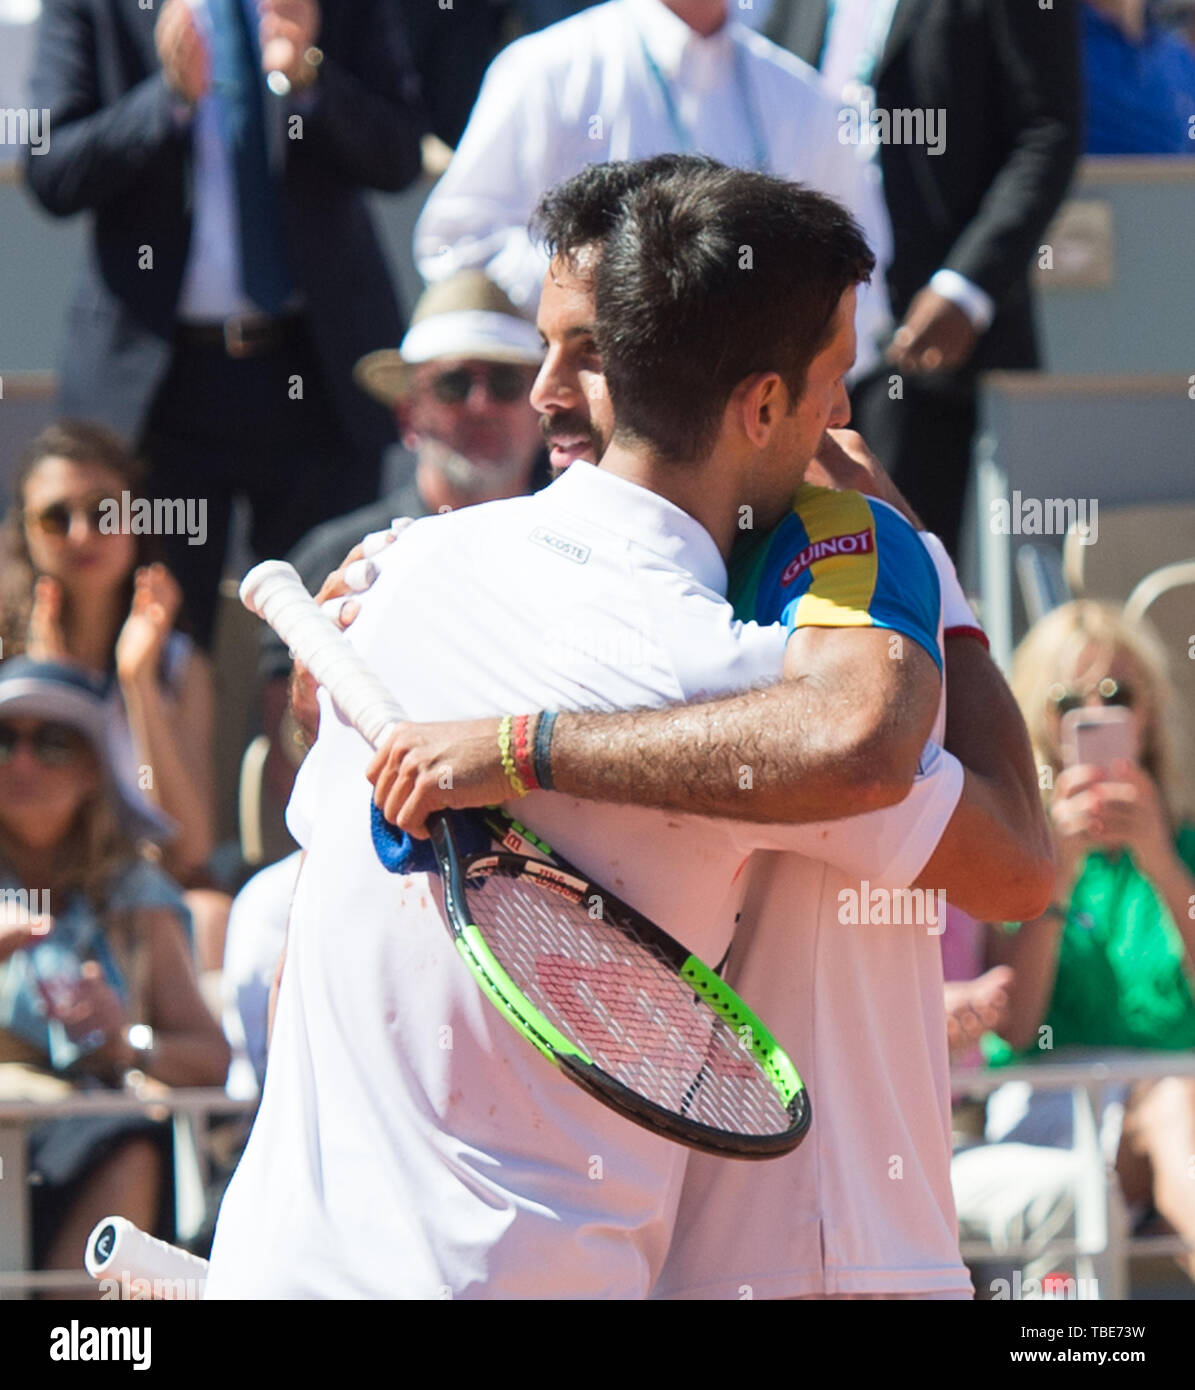 Paris, France. 1st June, 2019. Salvatore Caruso (ITA) is defeated by Novak Djokovic (SRB) 6-3, 6-3, 6-2, at the French Open being played at Stade Roland-Garros in Paris, France. © Karla Kinne/Tennisclix 2019/CSM/Alamy Live News Stock Photo